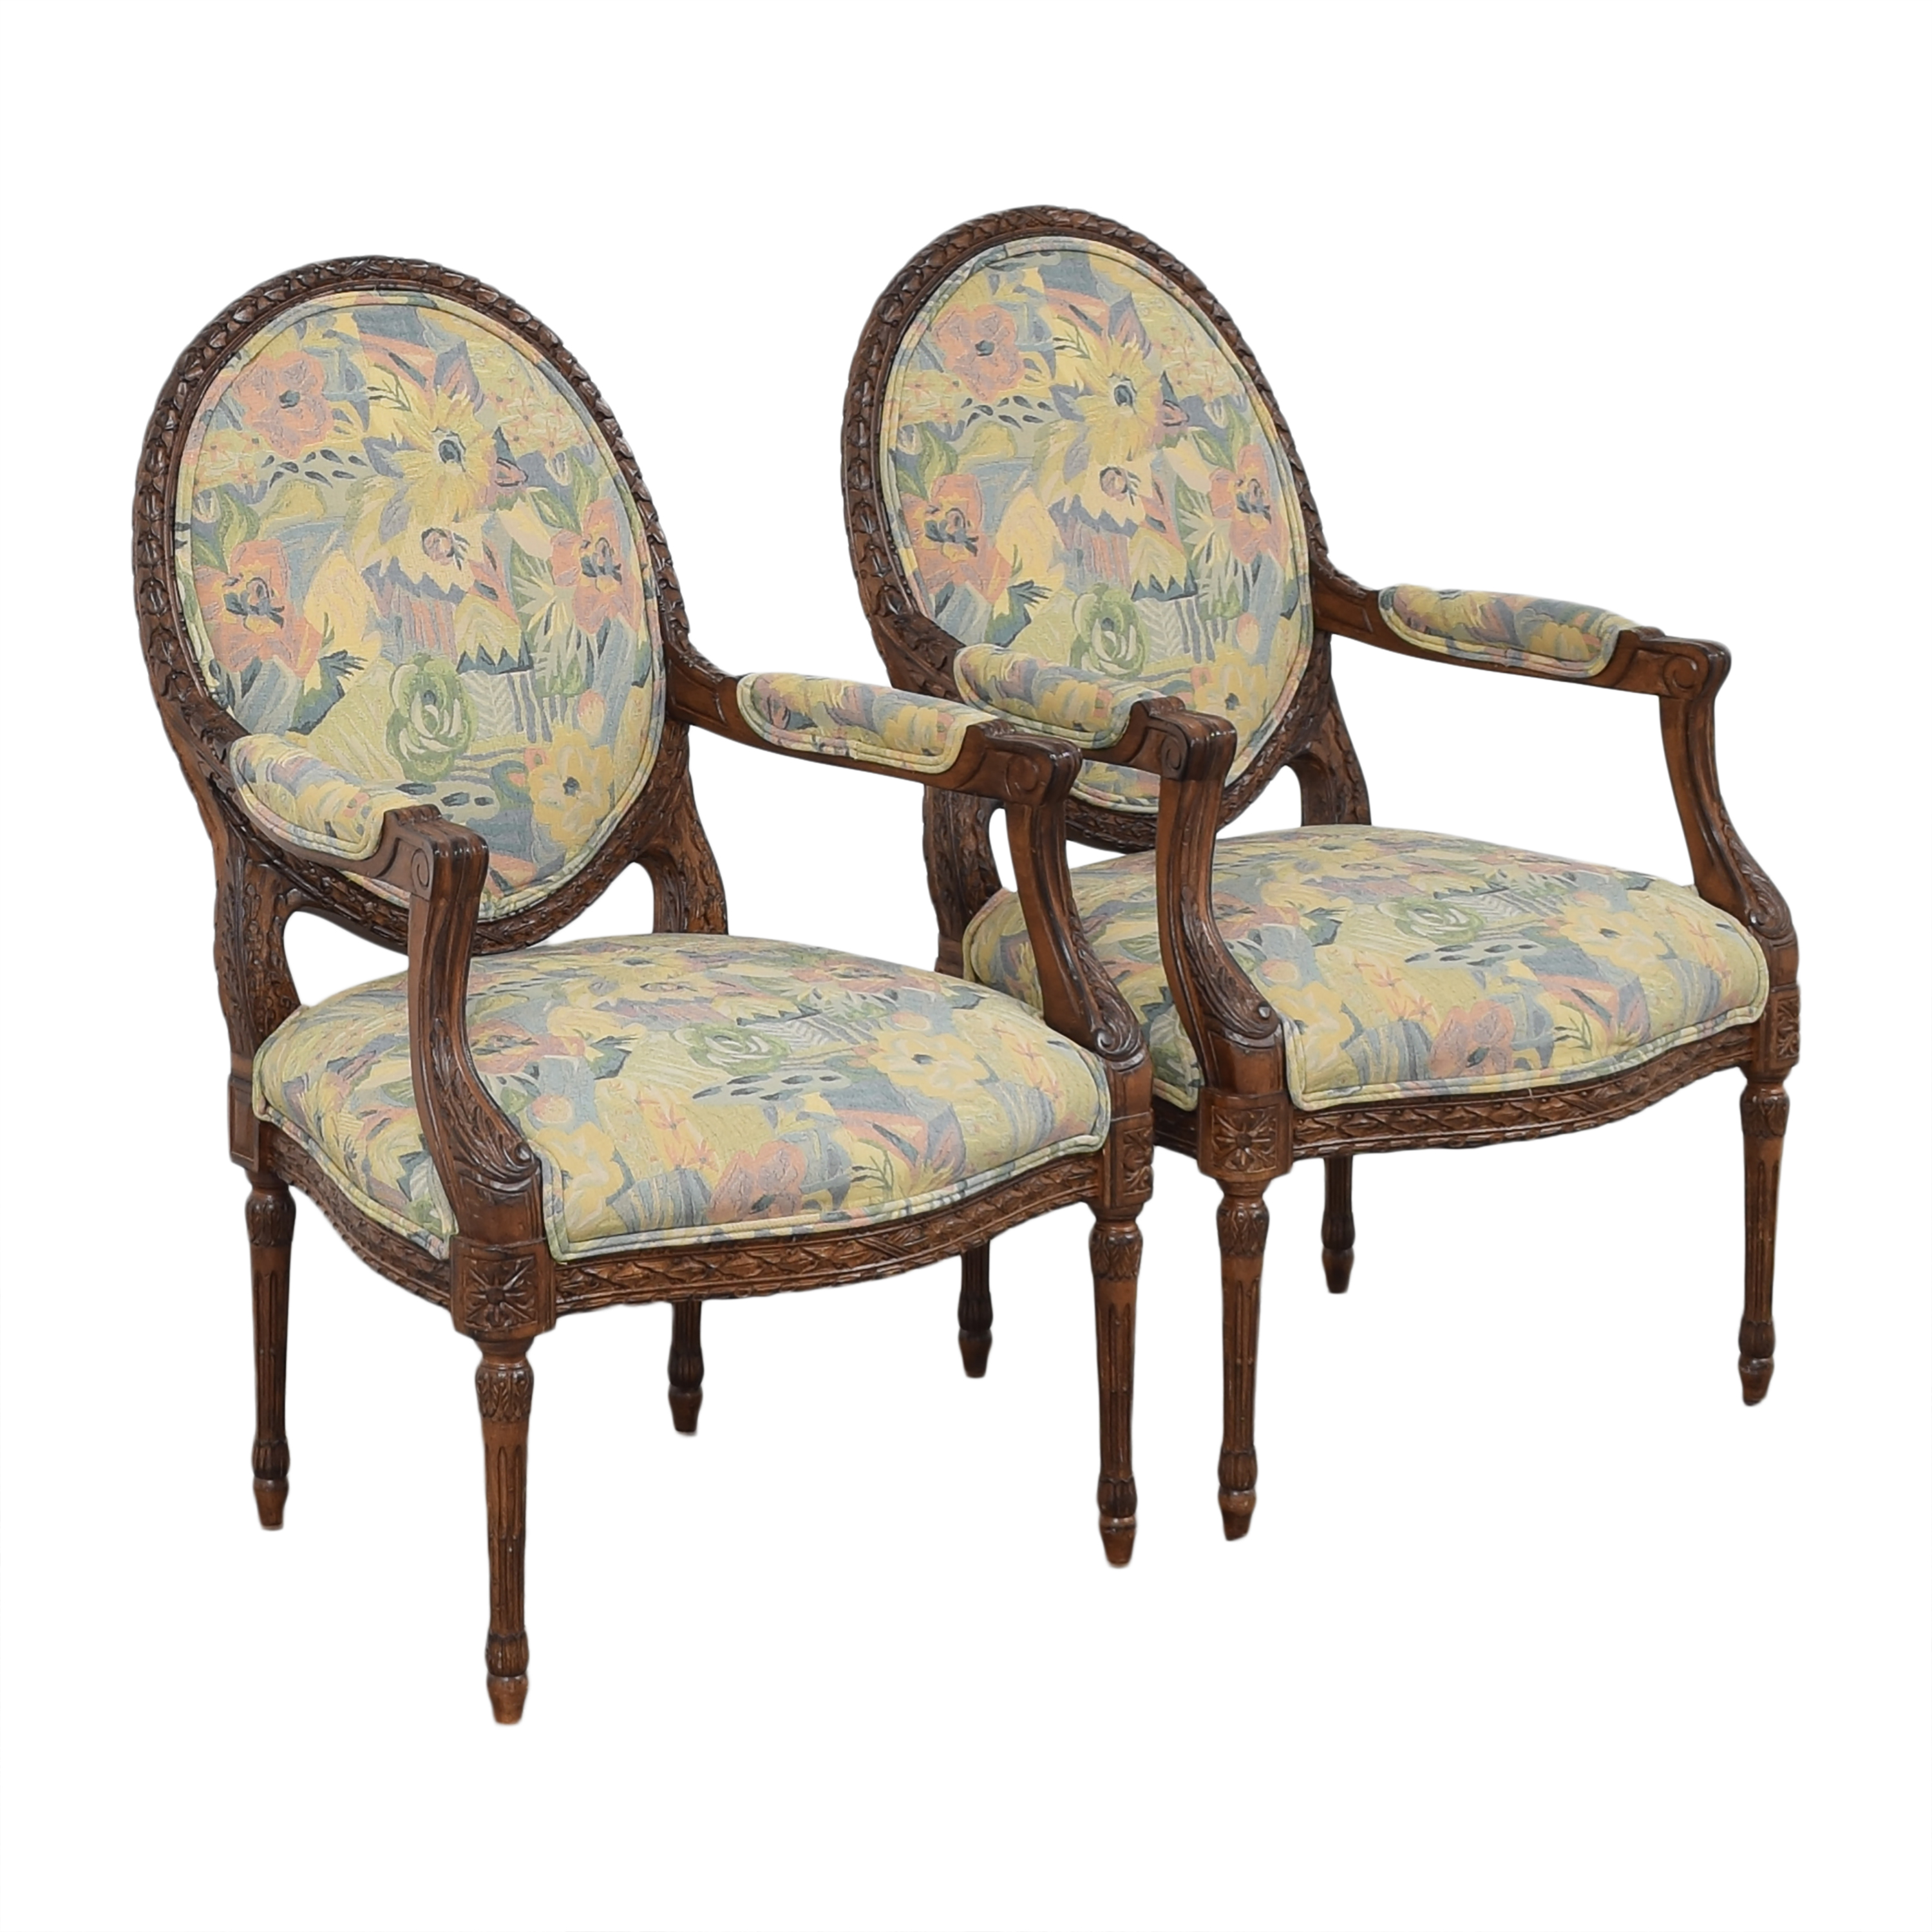 Meyer Gunther Martini Meyer Gunther Martini Carved Arm Chairs pa